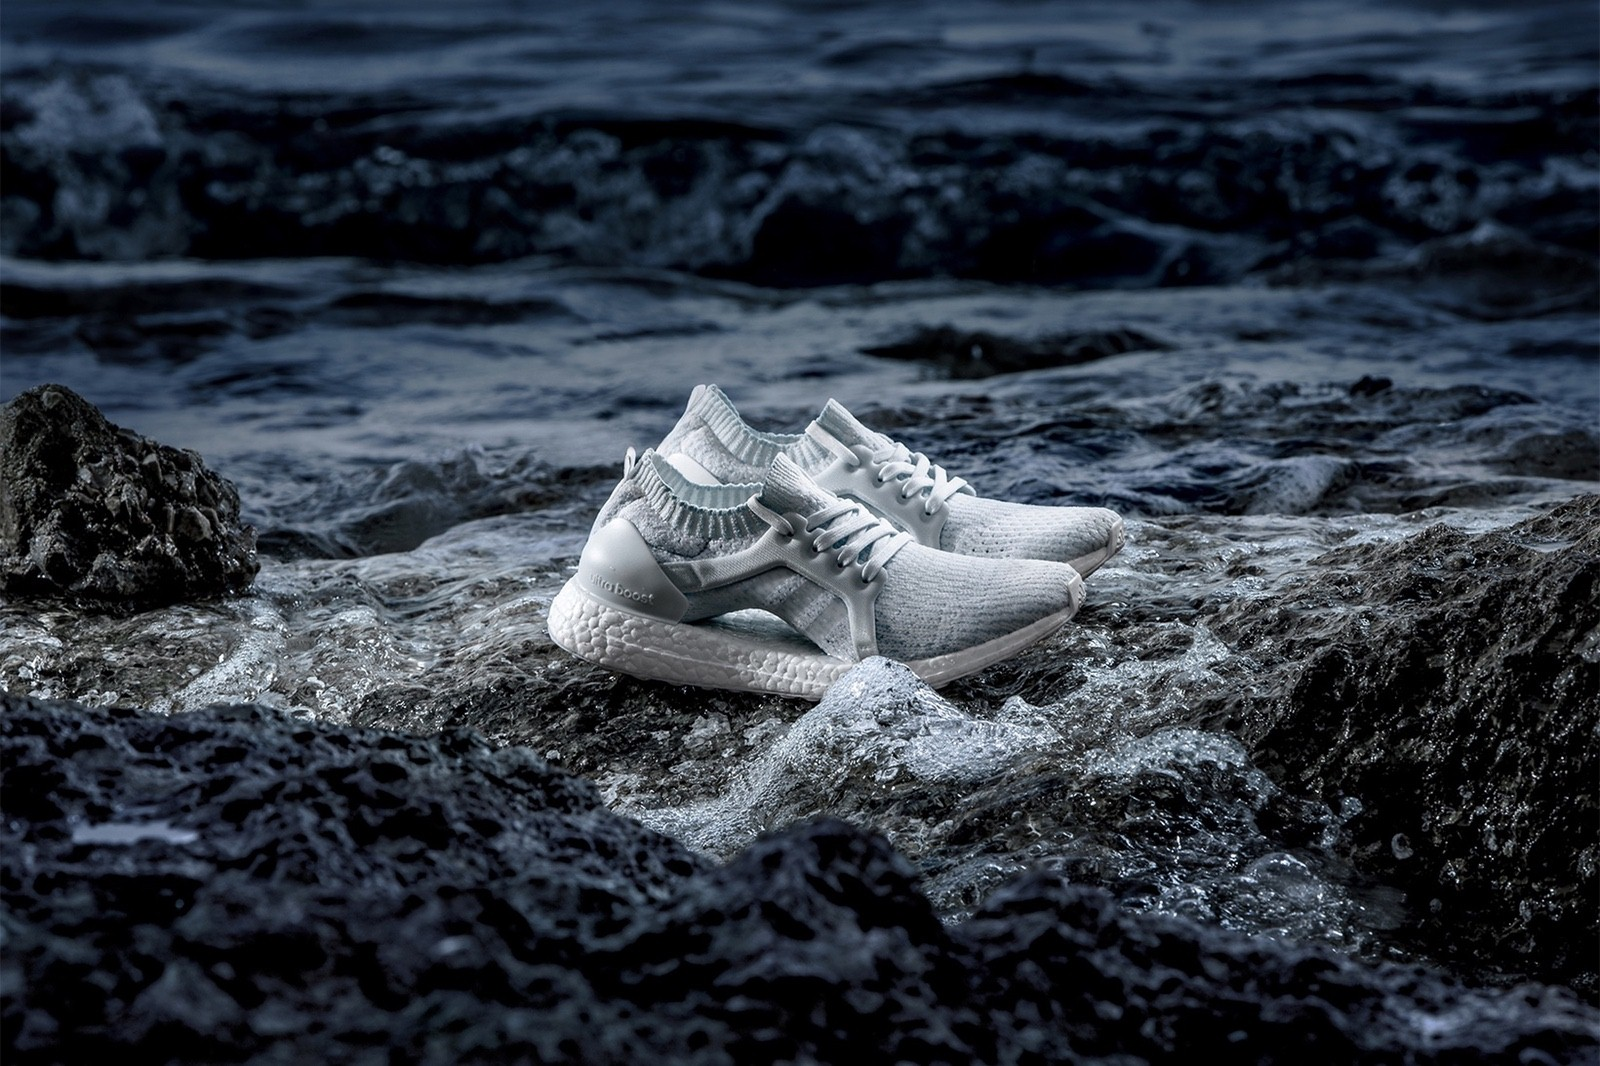 giay the thao tuan 1 thang 6.2017 - Parley x adidas UltraBOOST X - elle man